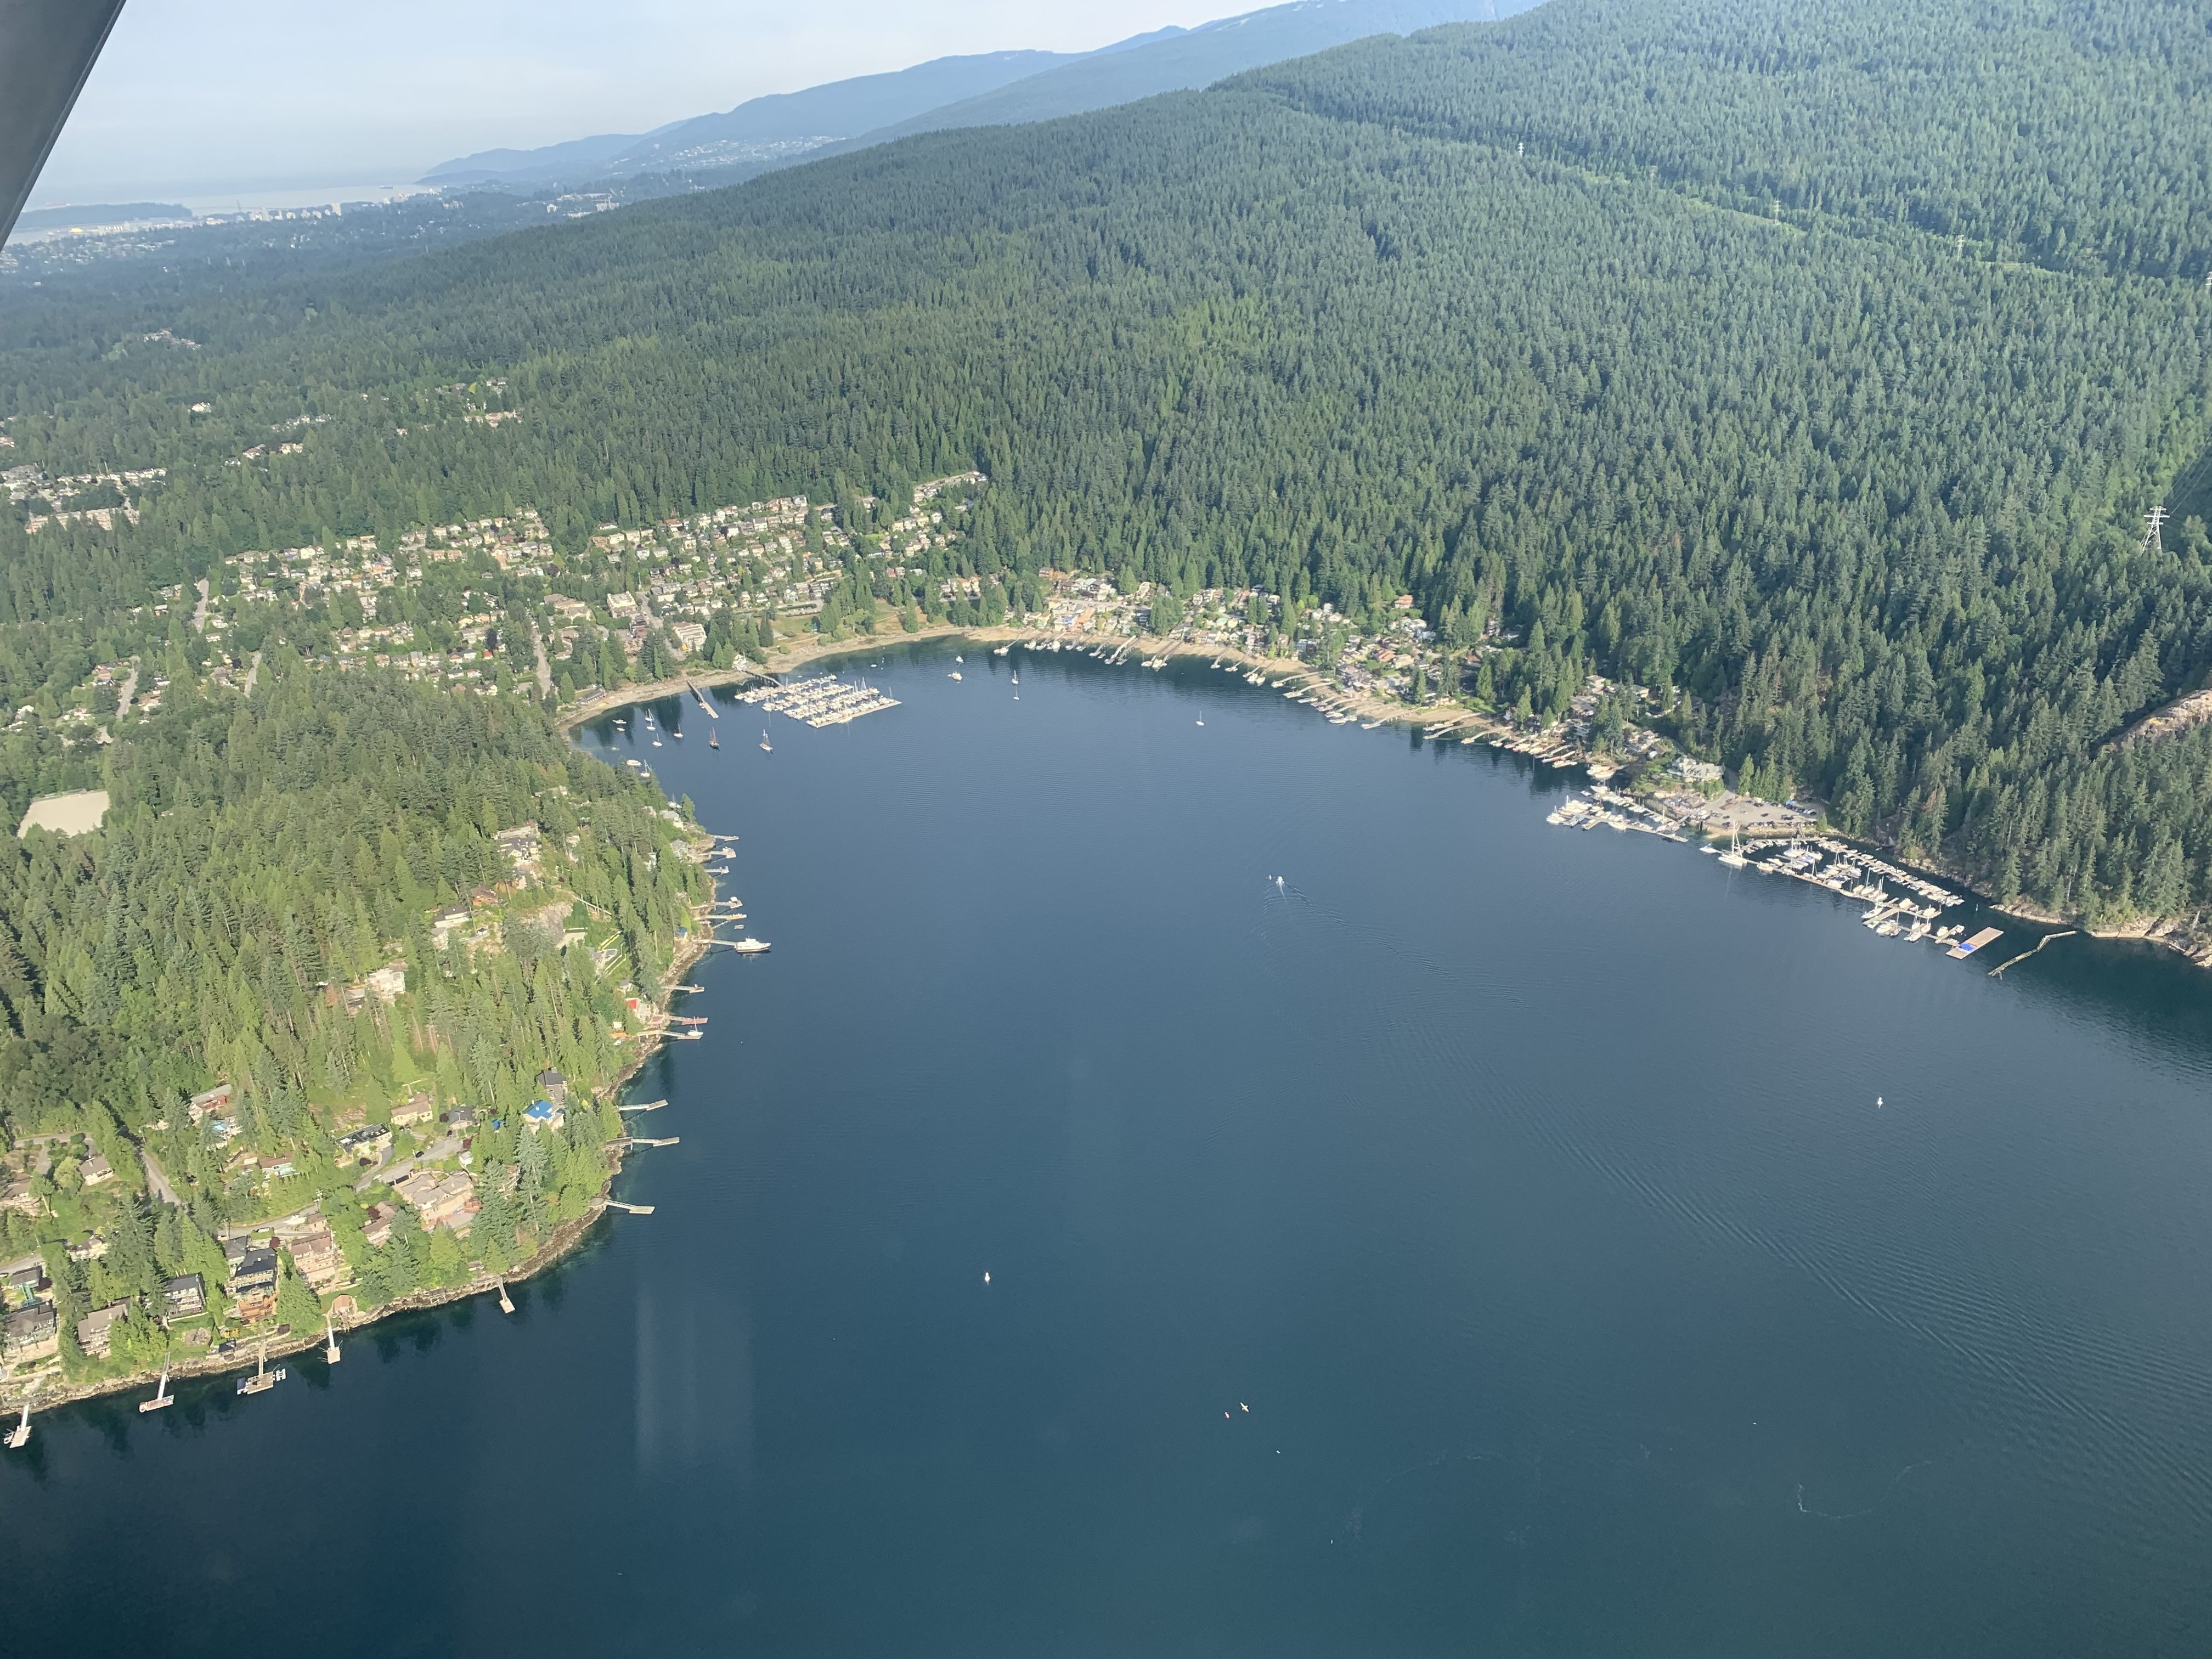 Deep Cove closed to swimmers due to abnormally high E. Coli levels